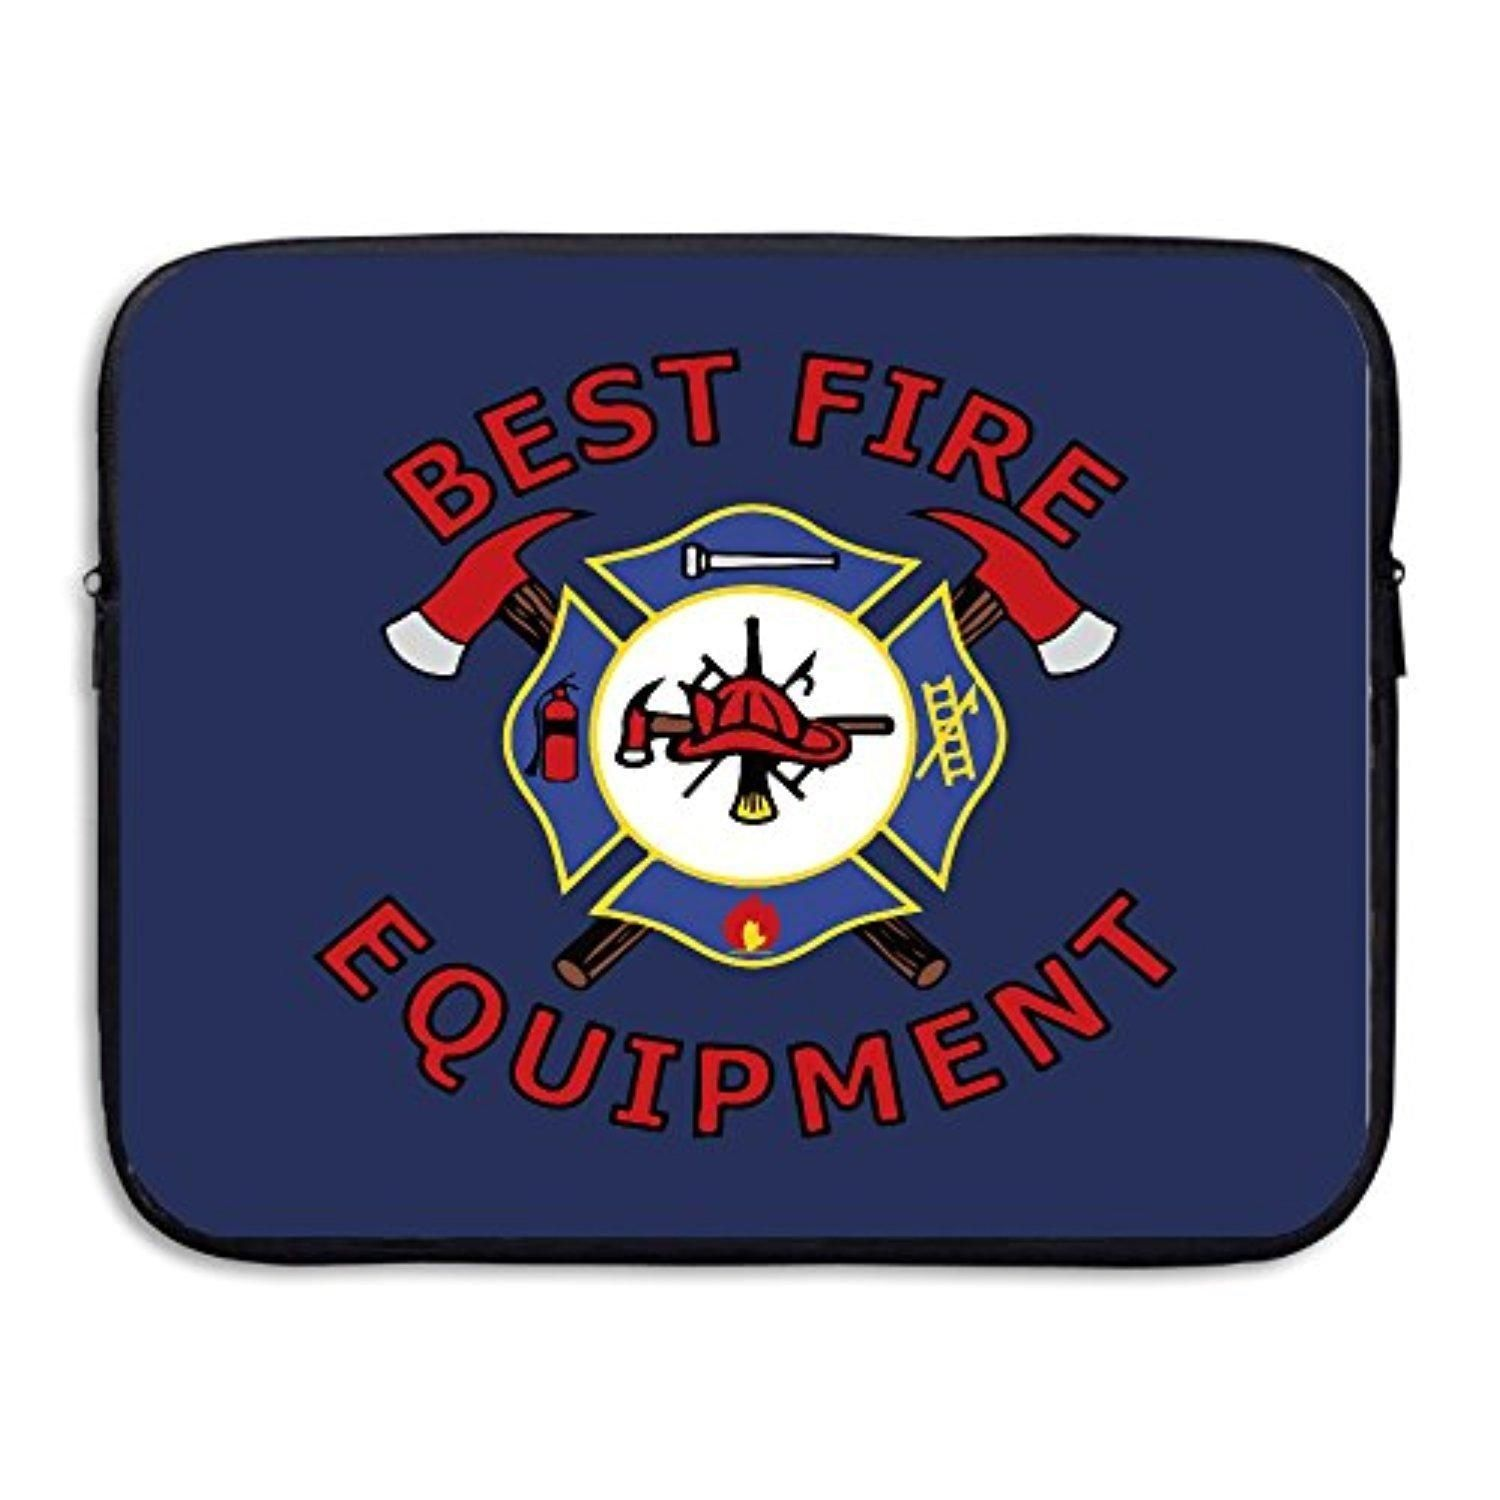 Best Fire Equipment Logo Relaxed Black Laptop Bag - Brought to you by Avarsha.com